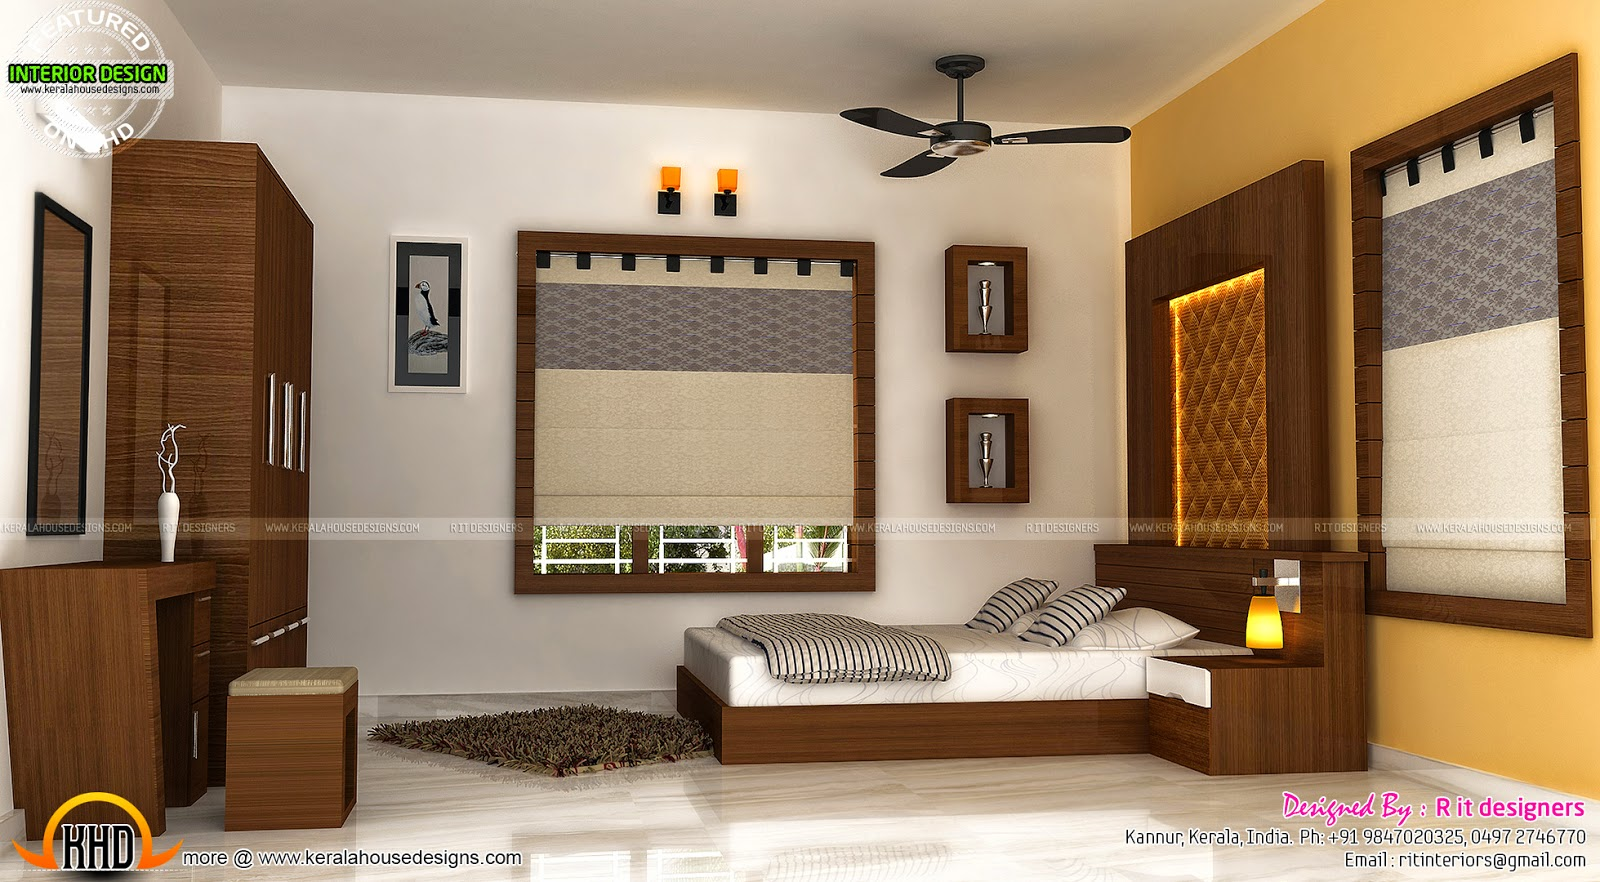 Staircase bedroom dining interiors kerala home design How to design your house interior